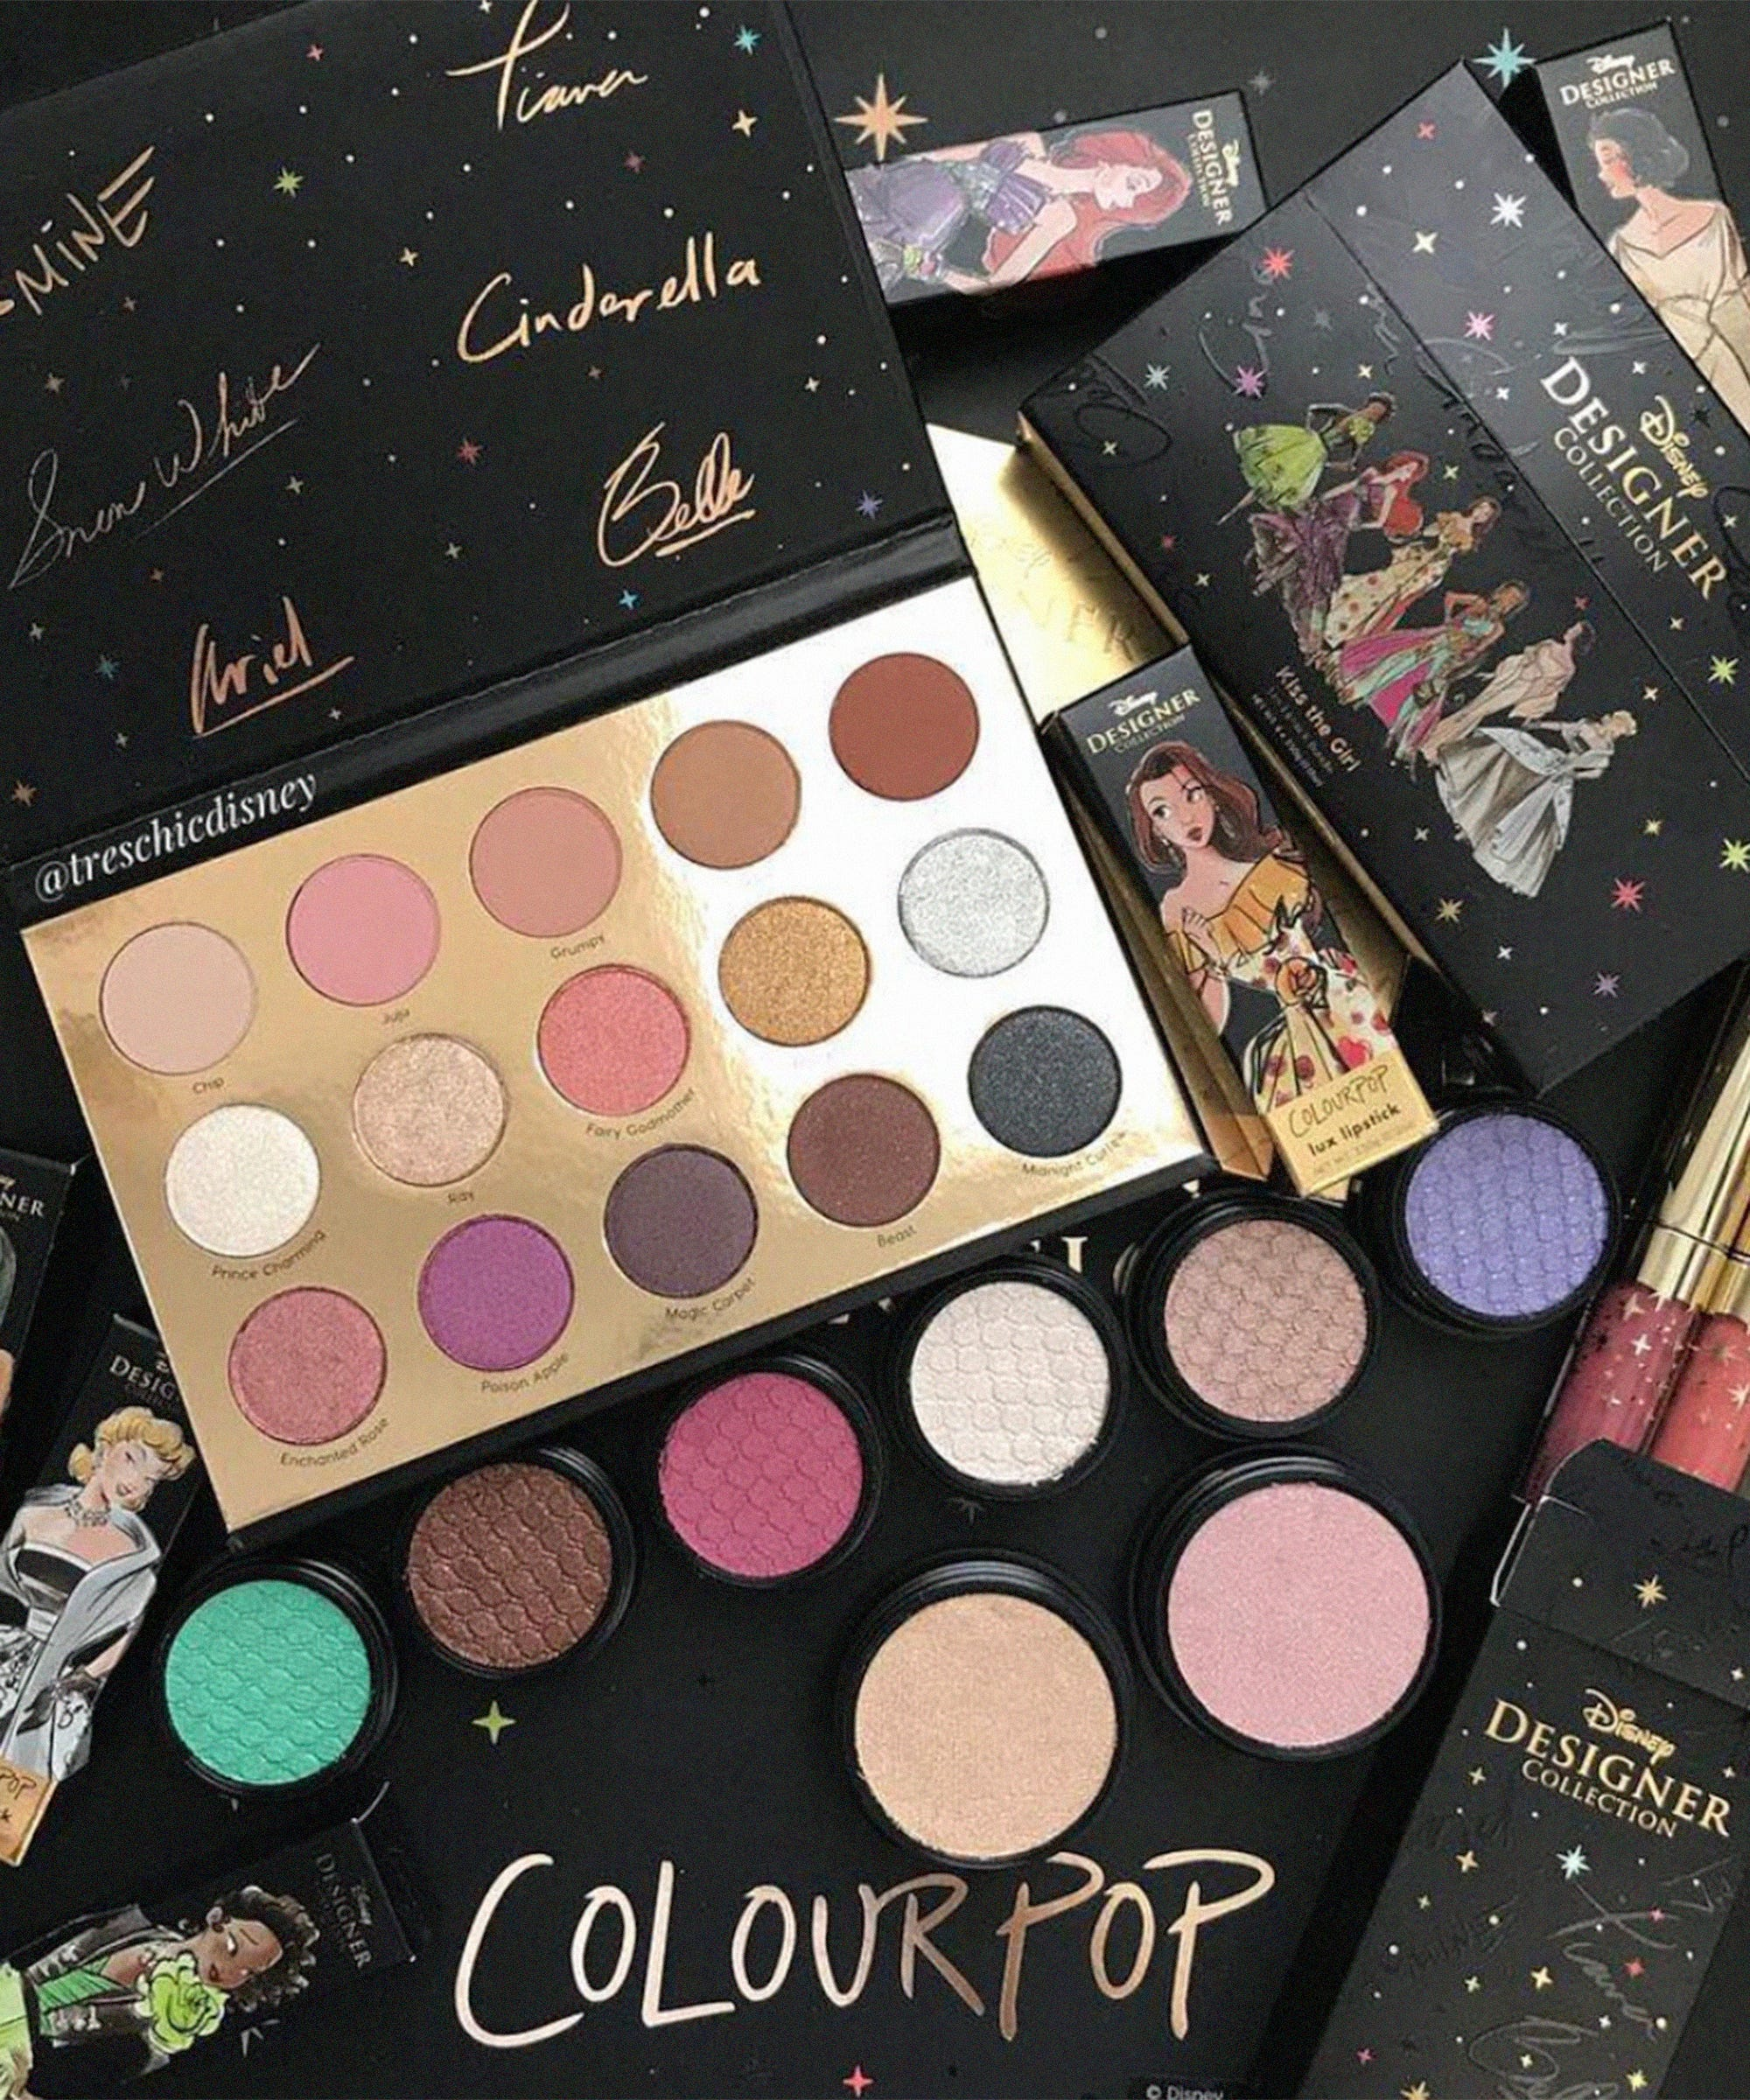 I Tried Disneys Colourpop Collection and It Opened up a Whole New World